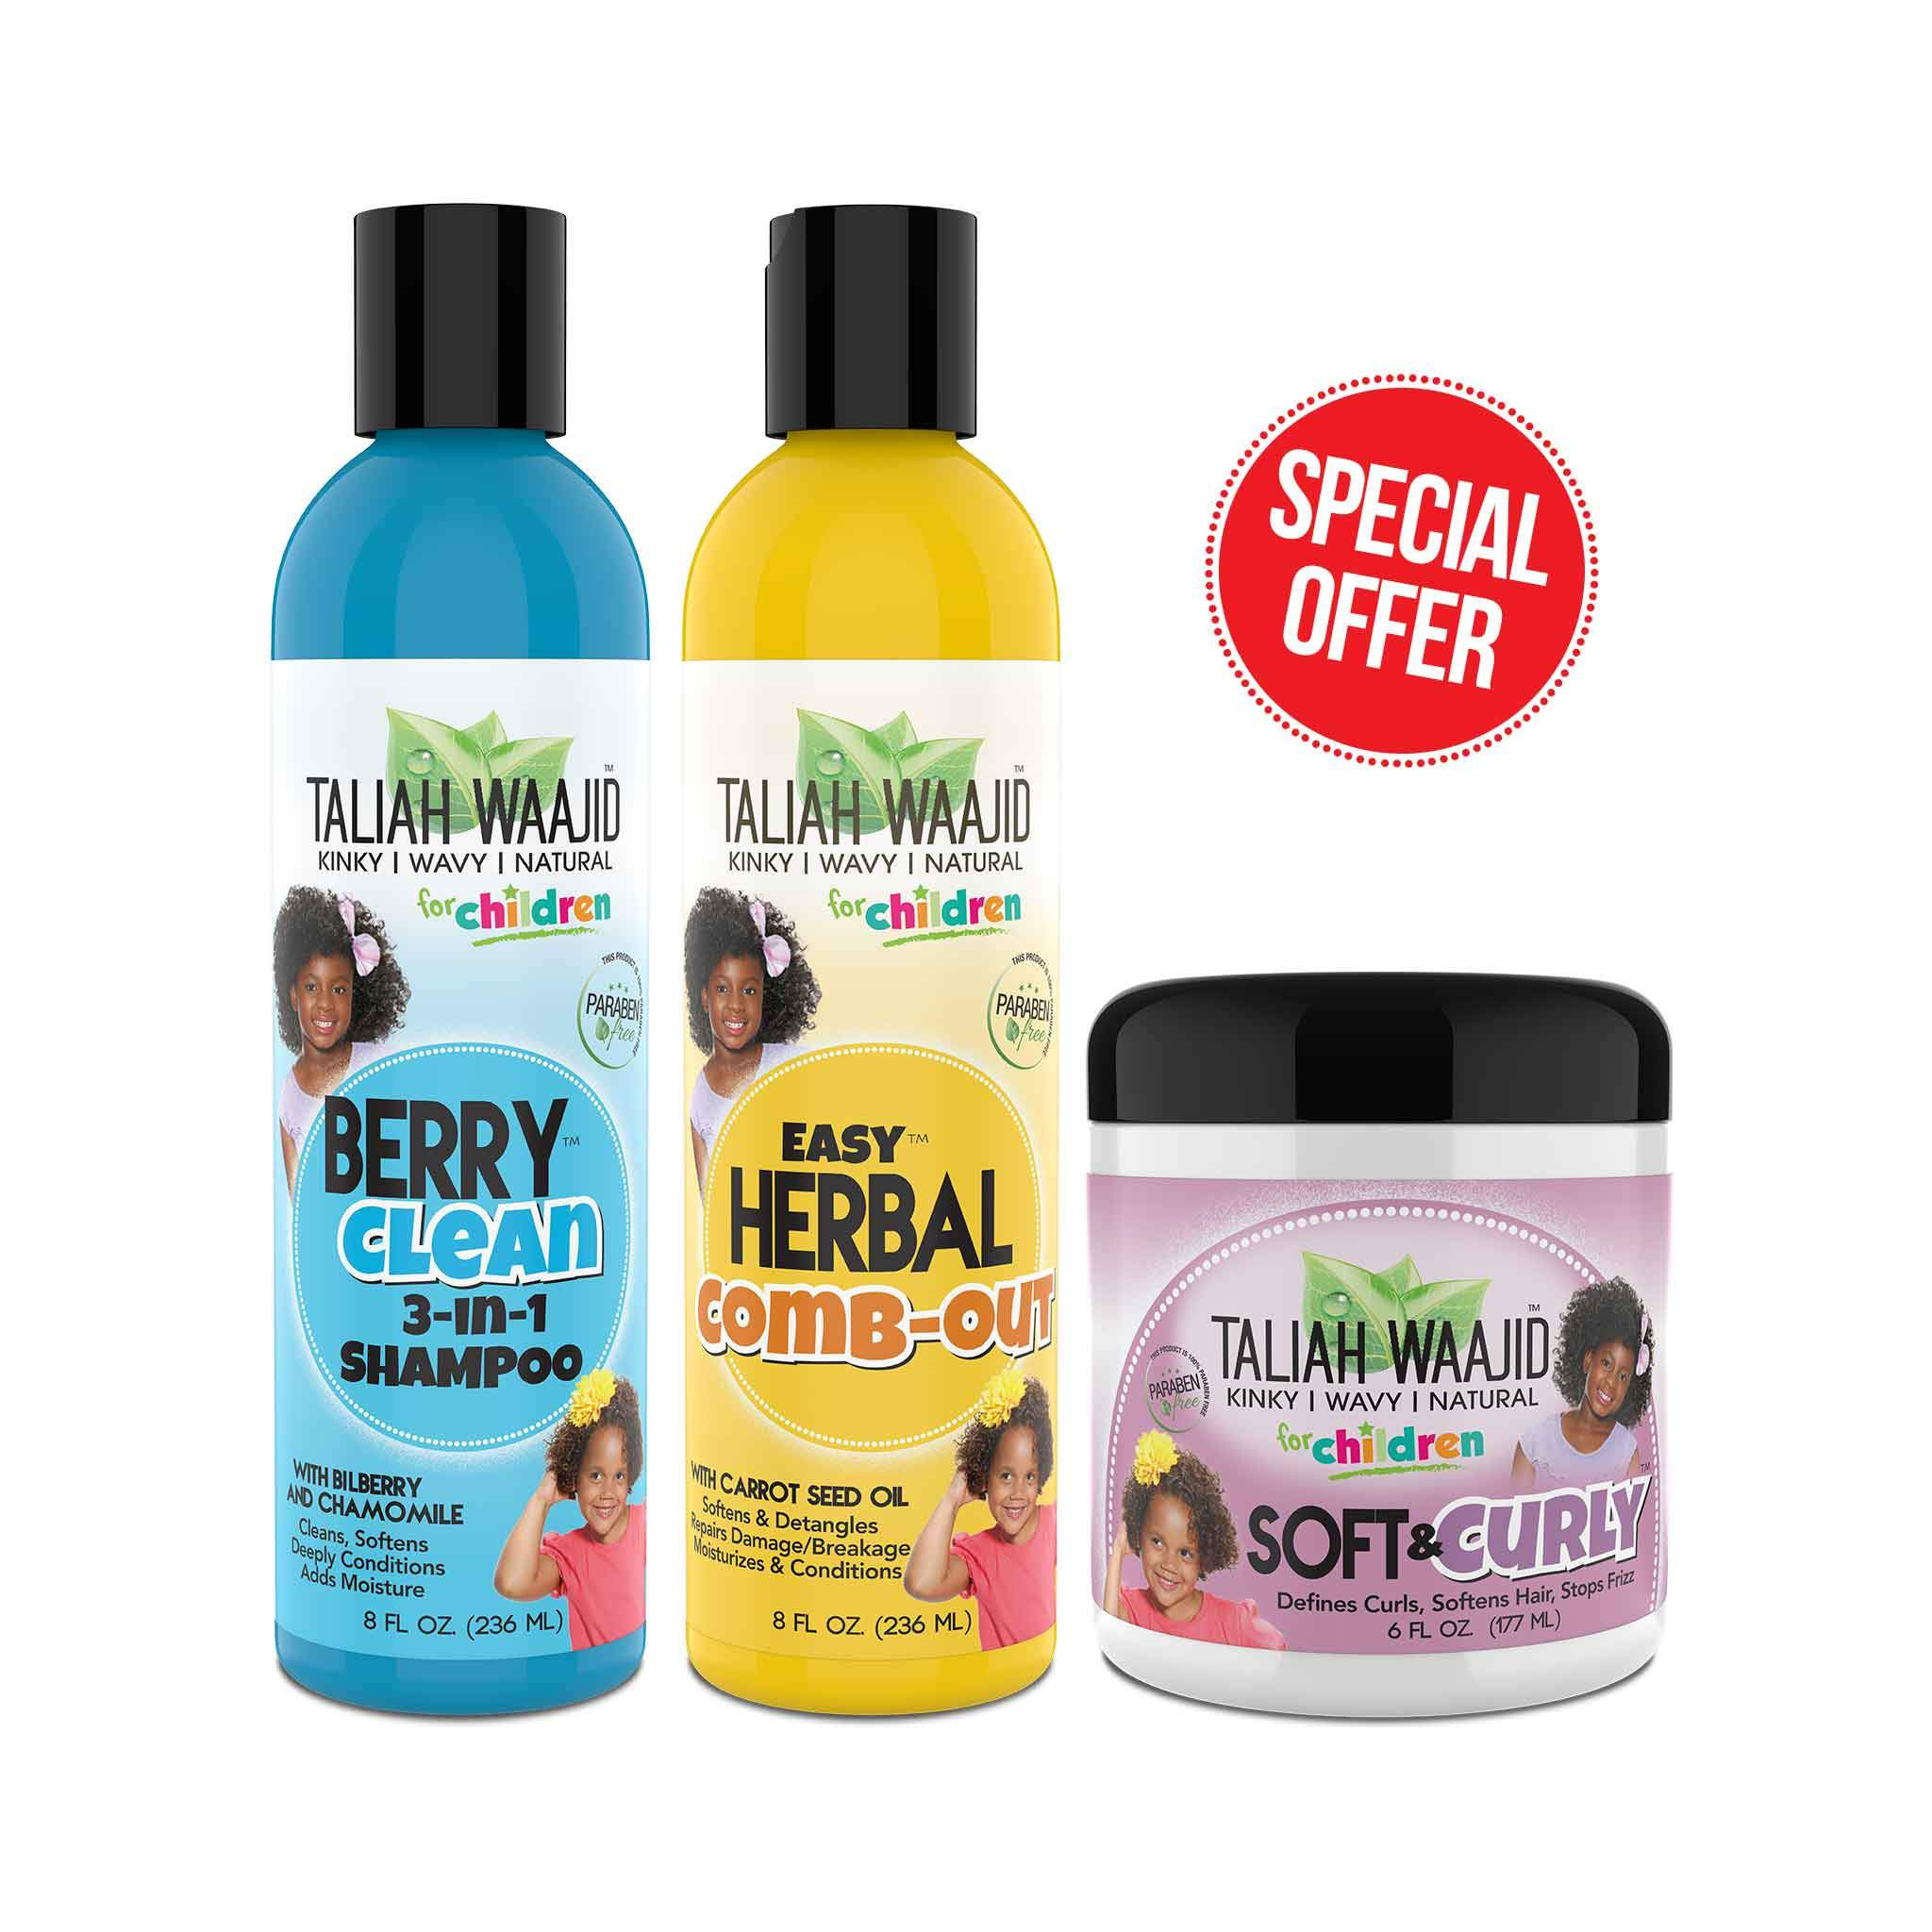 Natural Hair Products For Kids  Curly Wavy Hair Bundle for Kids Taliah Waajid Brand